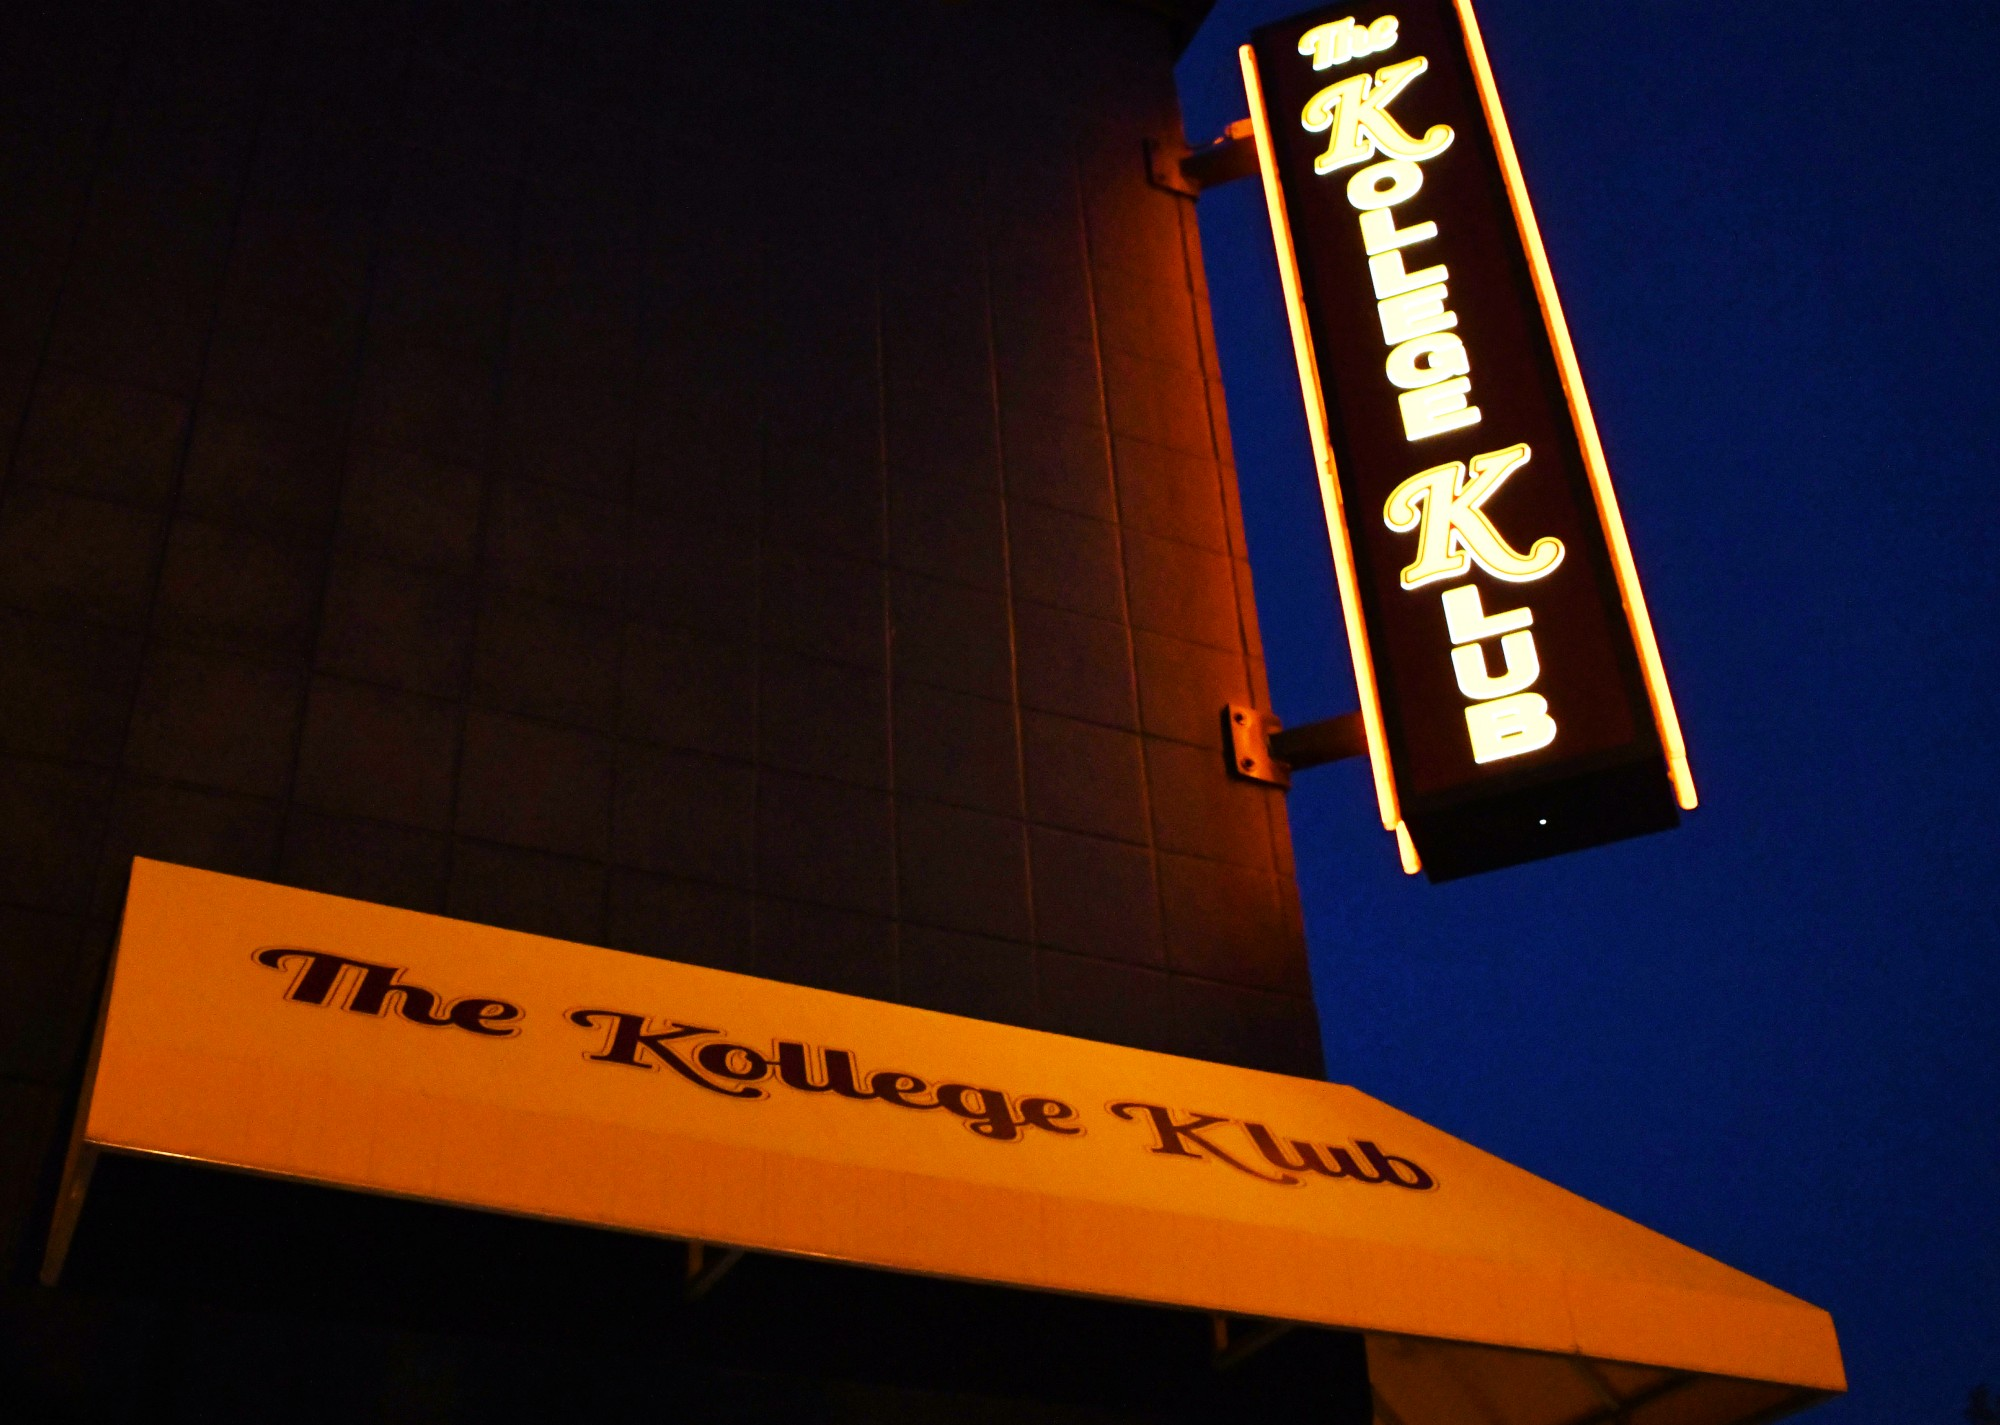 The Kollege Klub, a popular bar in Dinkytown, on Saturday, June 20. Bars in Minneapolis recently reopened their doors, but have limited hours of operation. (Emily Urfer / Minnesota Daily)